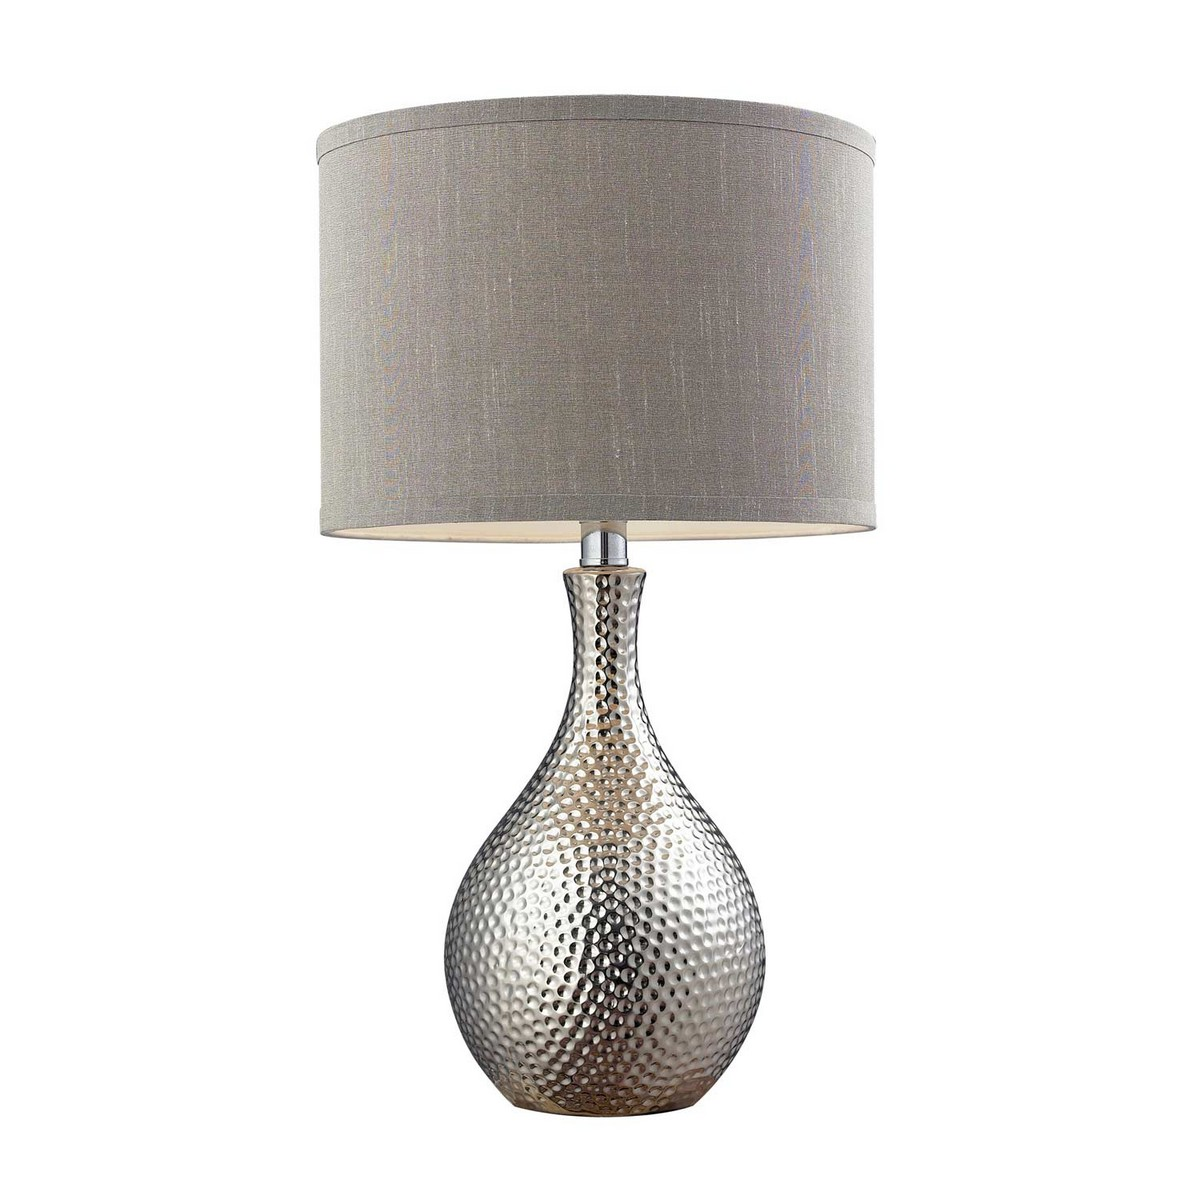 Elk Lighting D124 Table Lamp - Chrome Plated